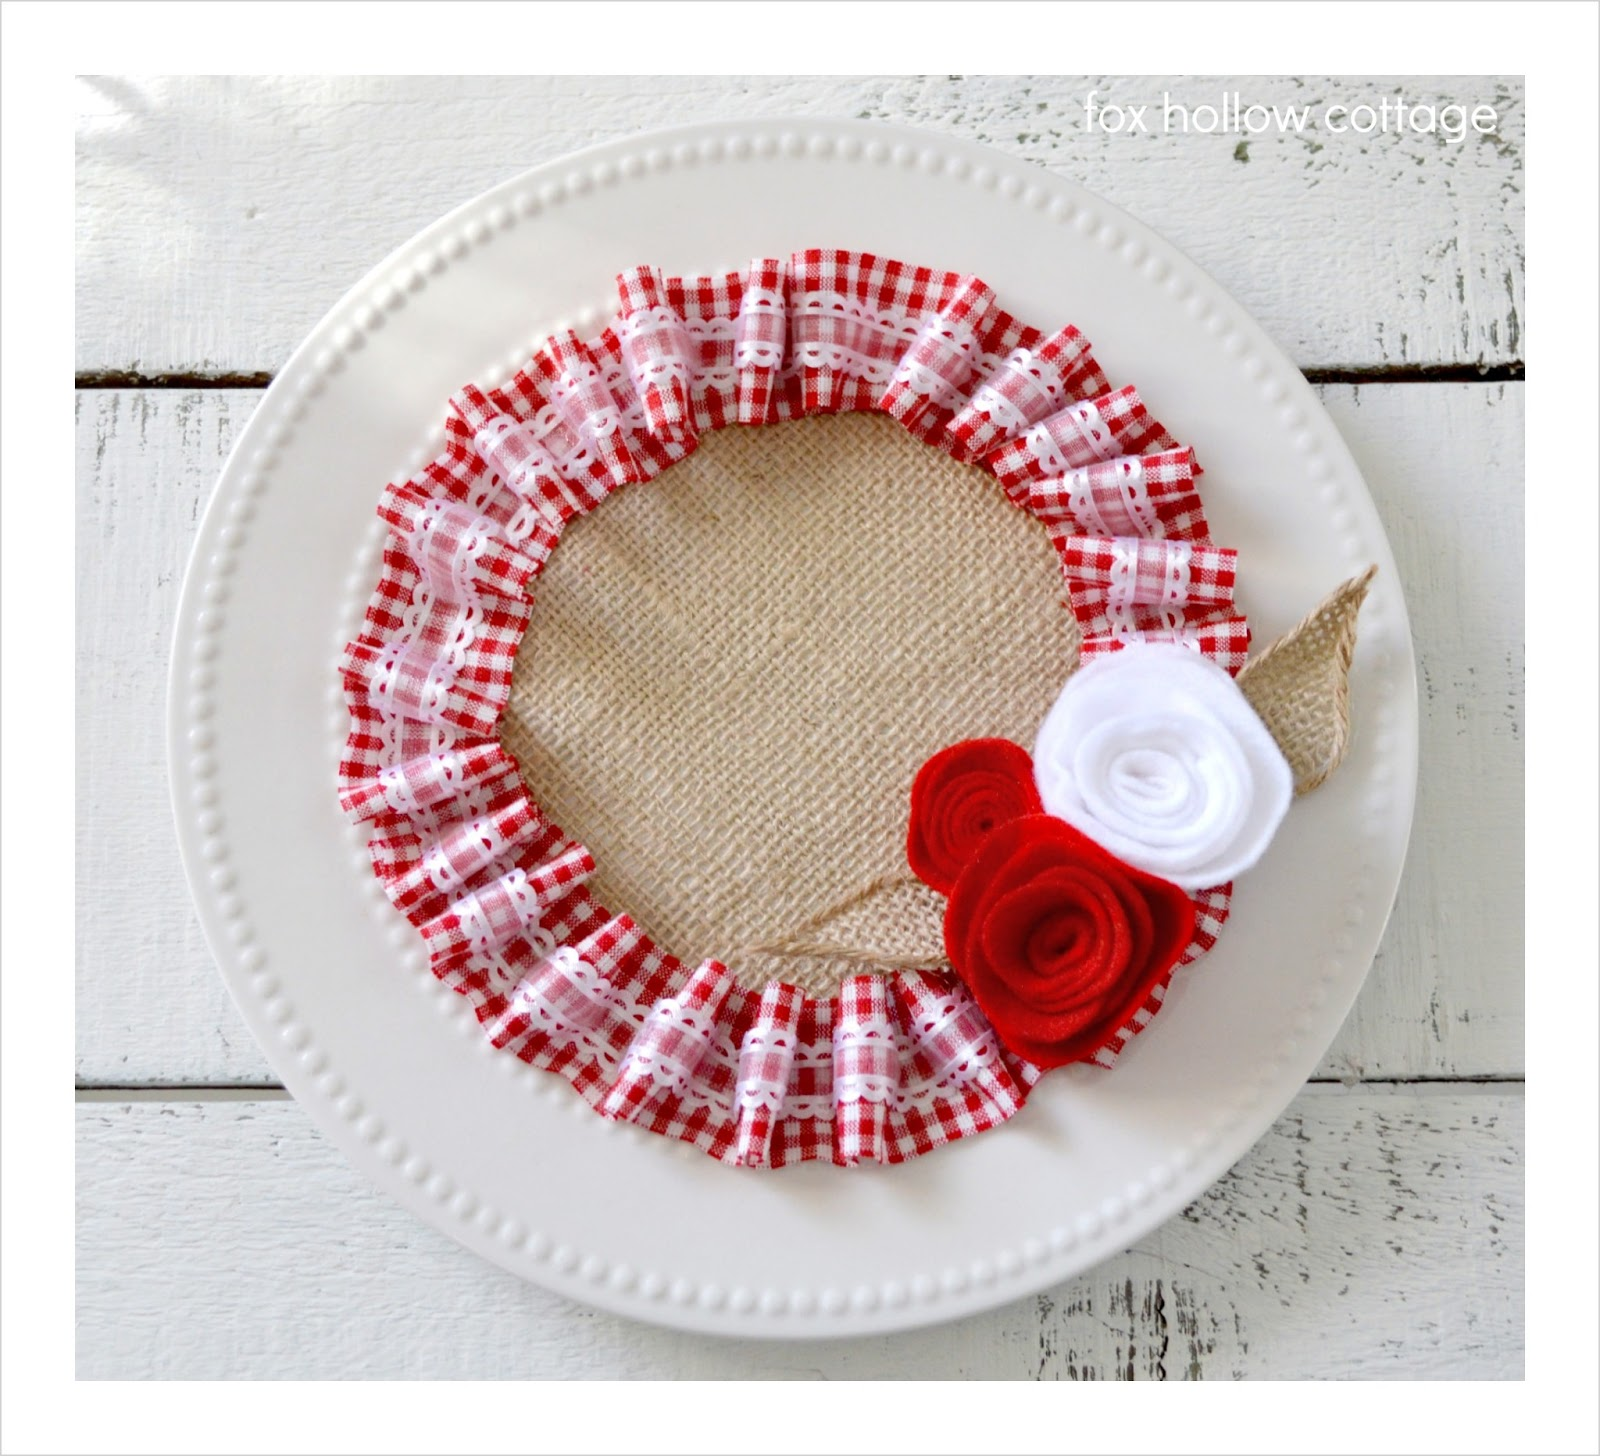 A Valentine's Craft {in burlap and ruffles} - Fox Hollow Cottage